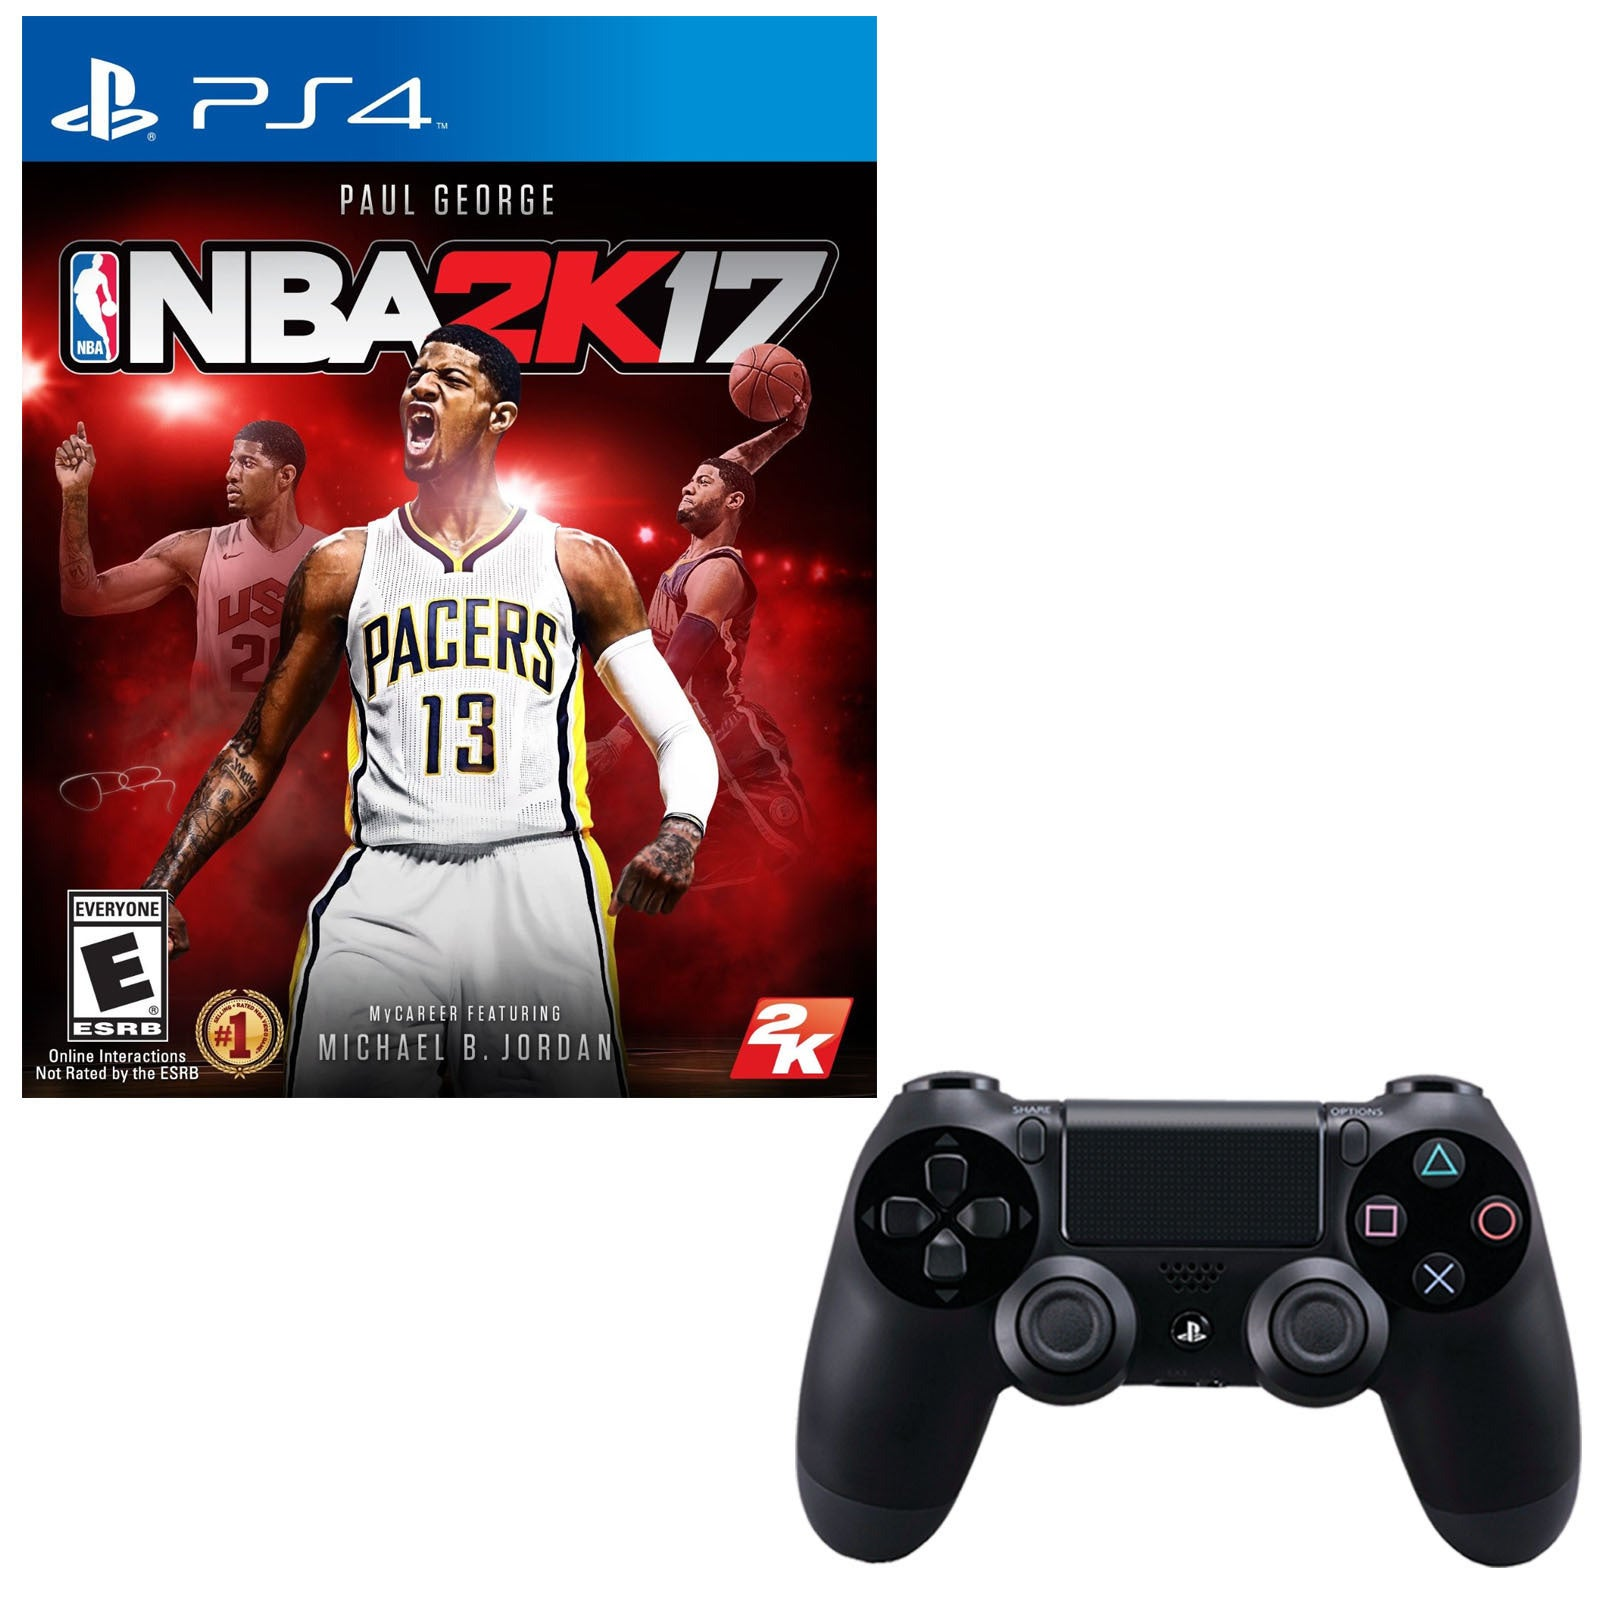 Sony Playstation 4 Dualshock 4 Wireless Controller With N...